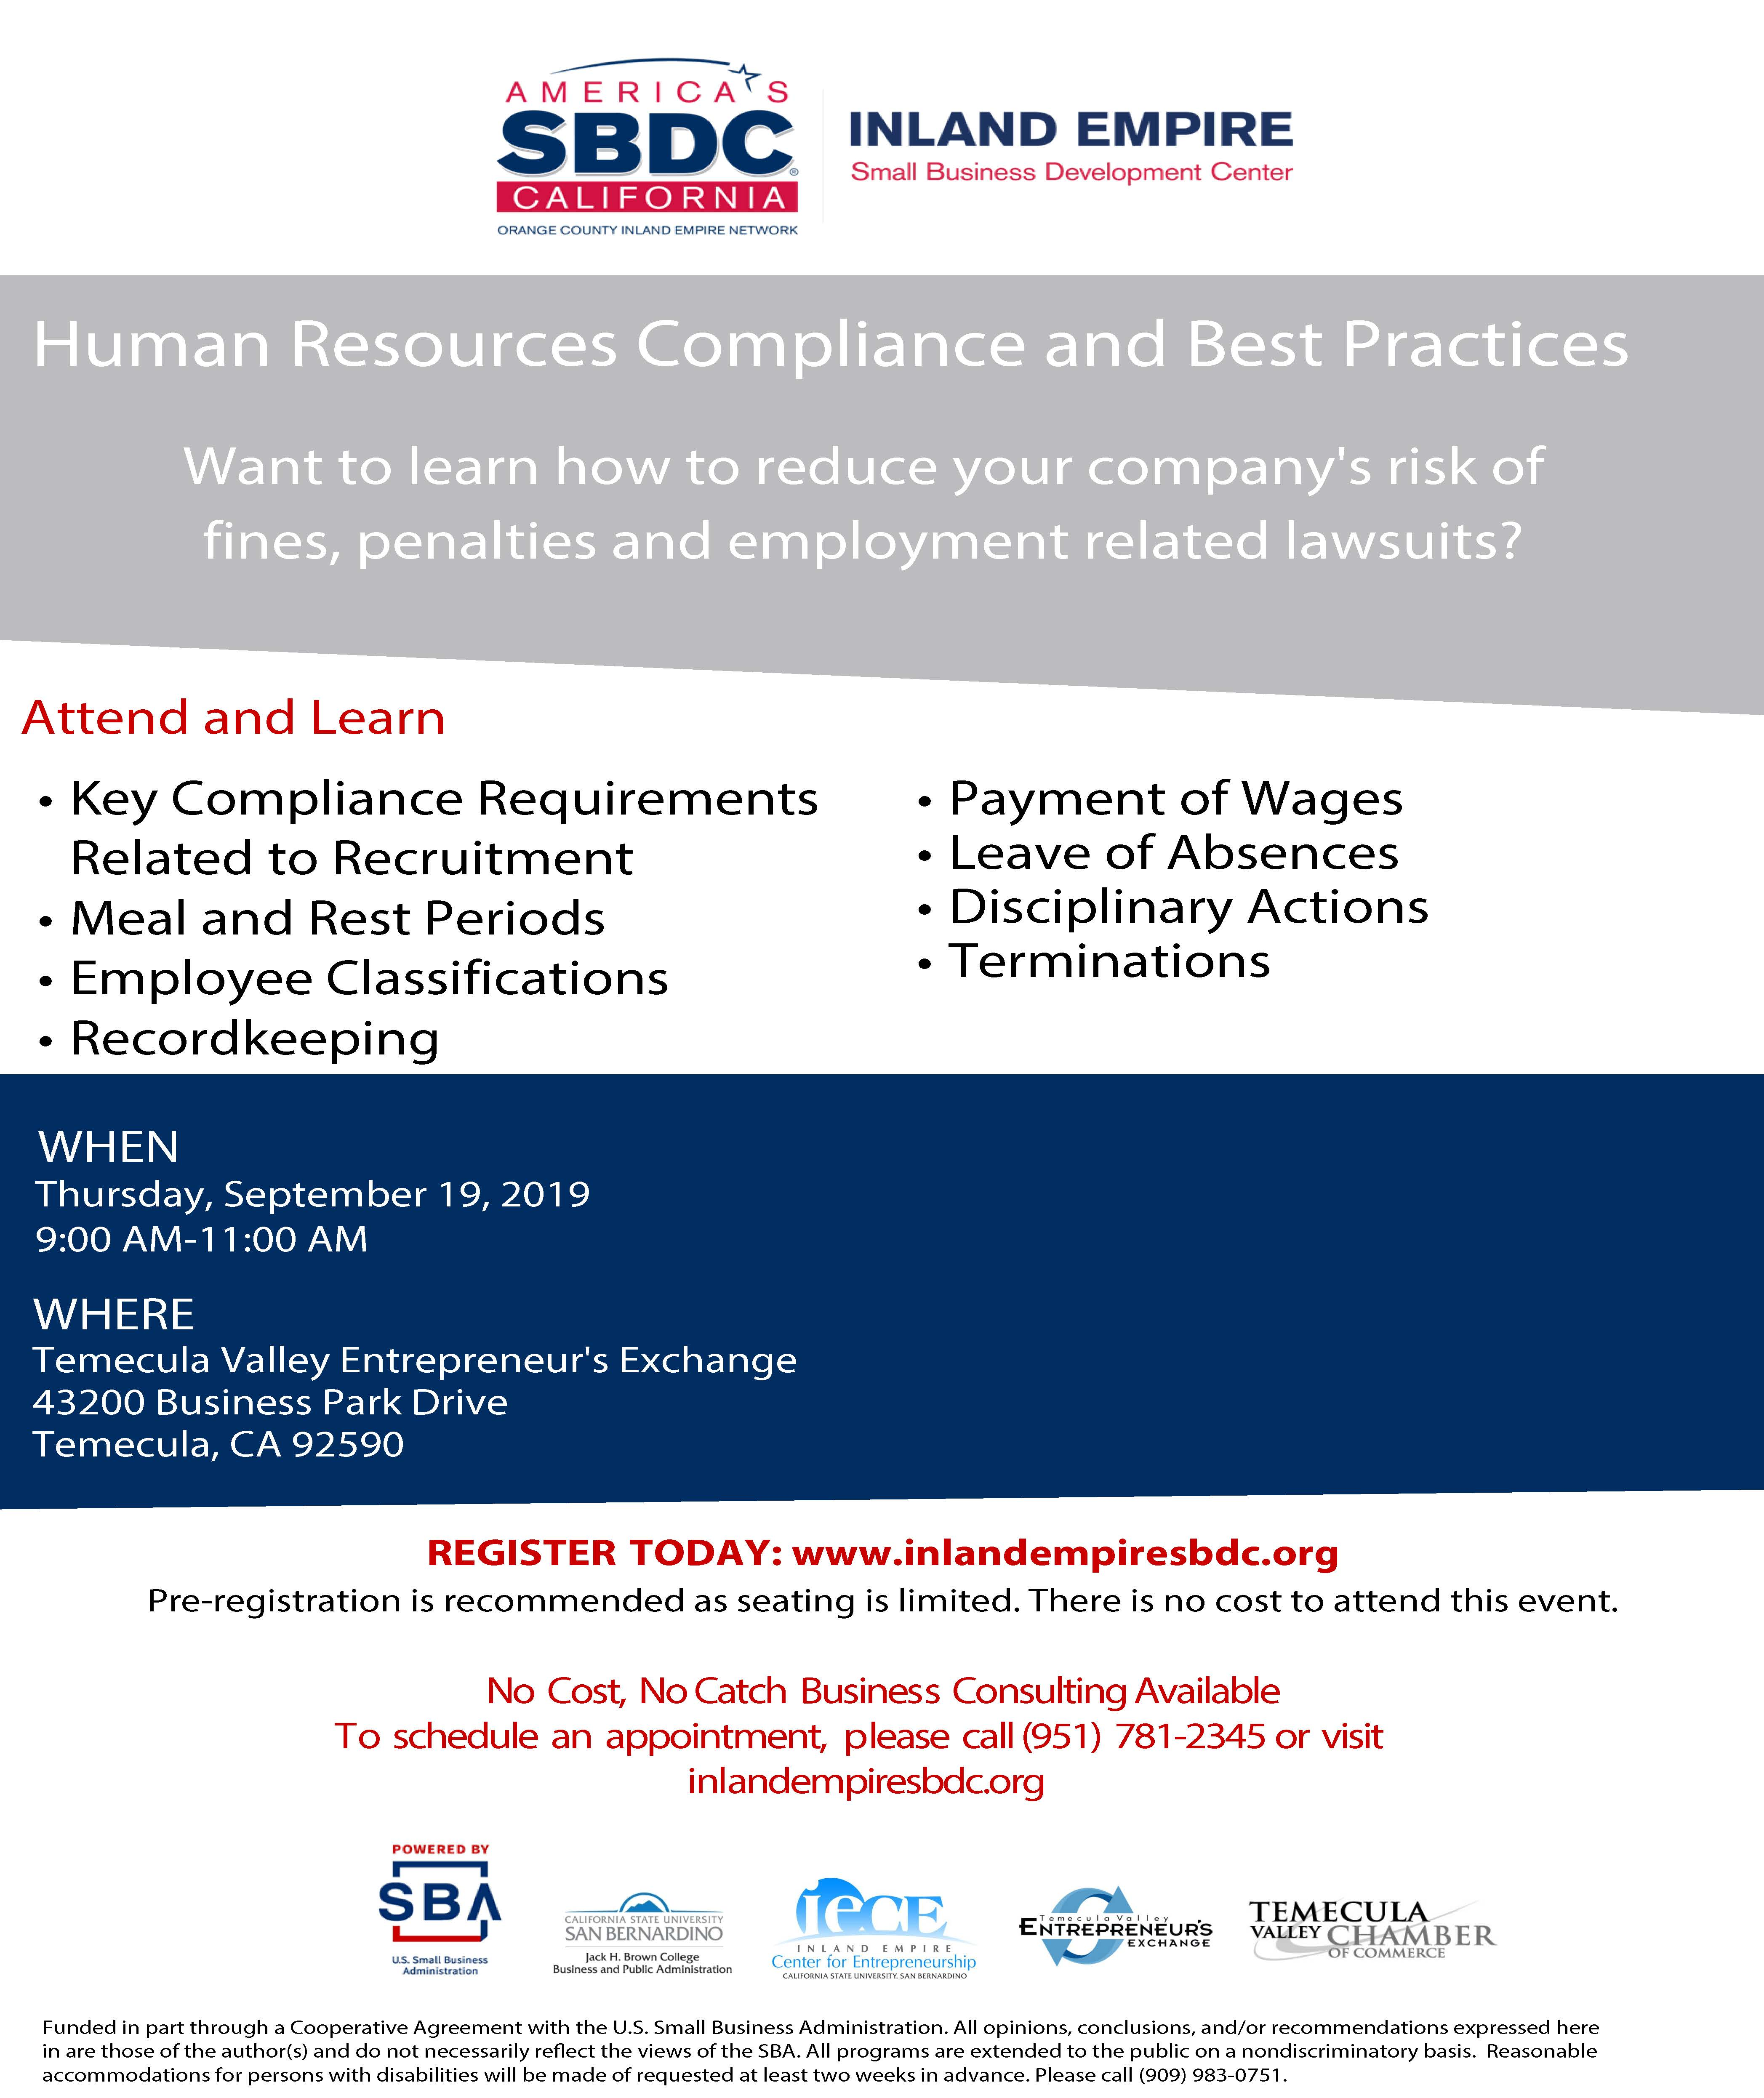 SBDC - Human Resource Compliance and Best Practices @ Temecula Valley Entrepreneur's Exchange